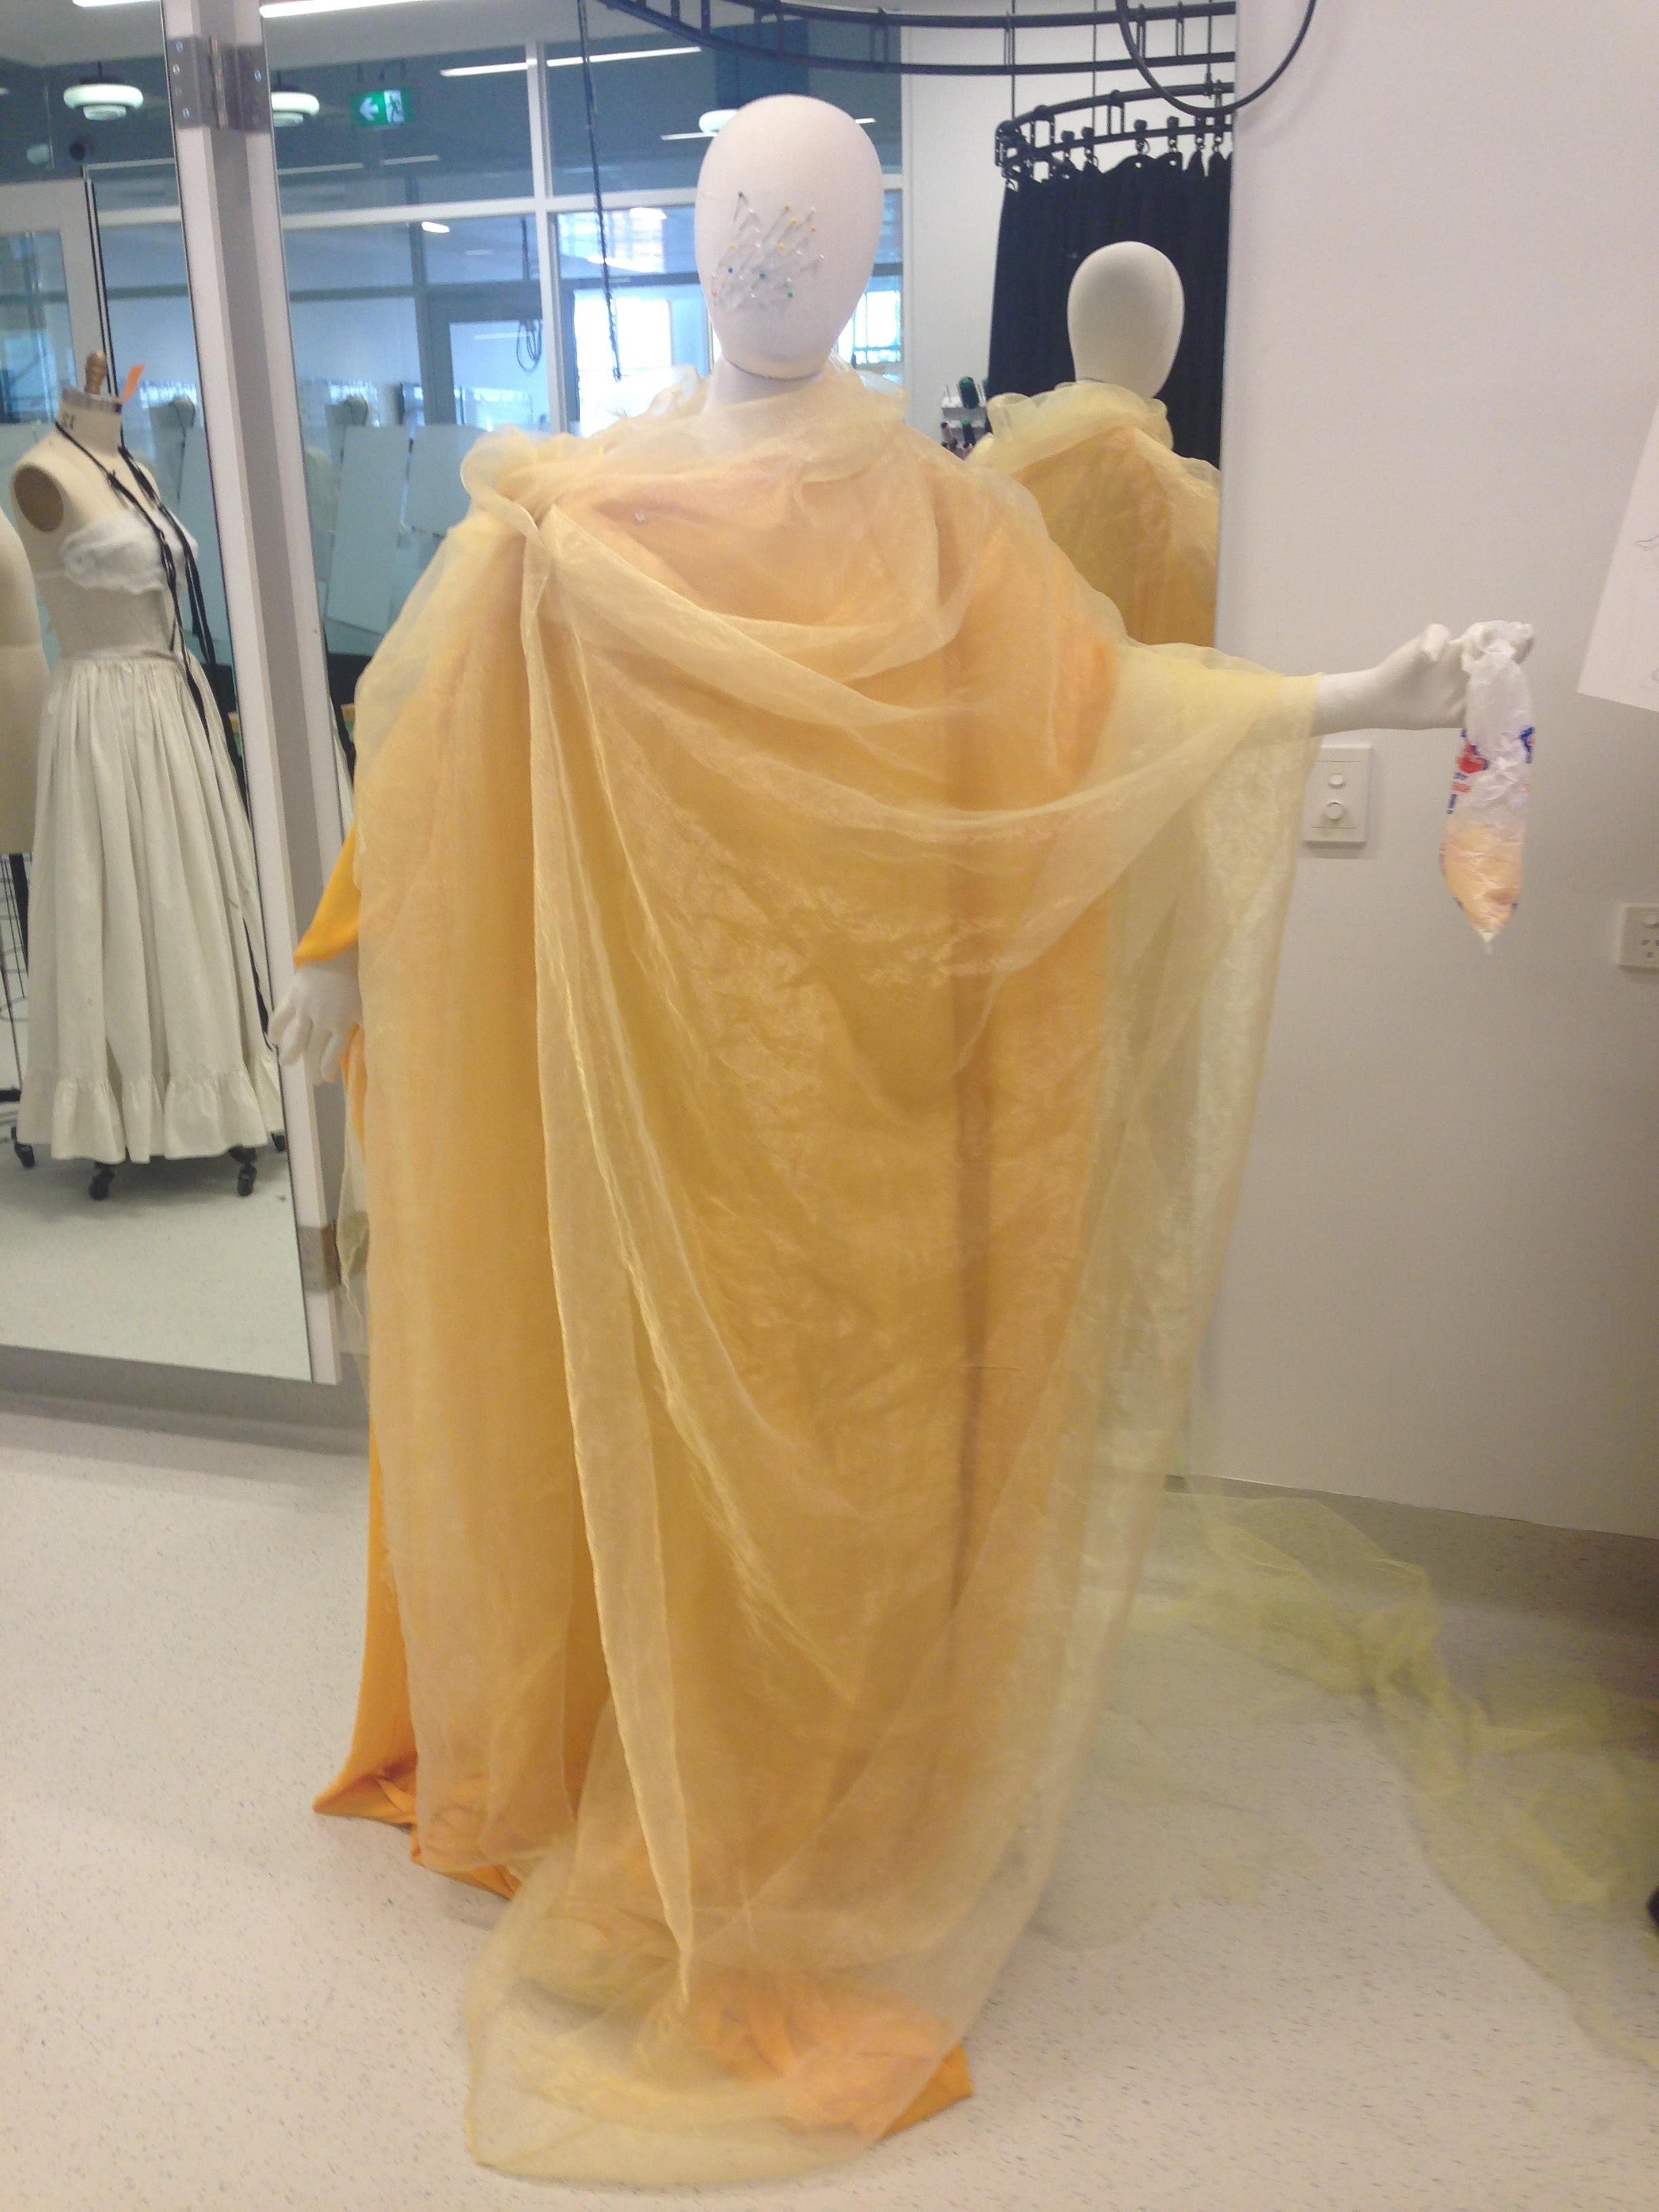 Back in the workroom on the mannequin